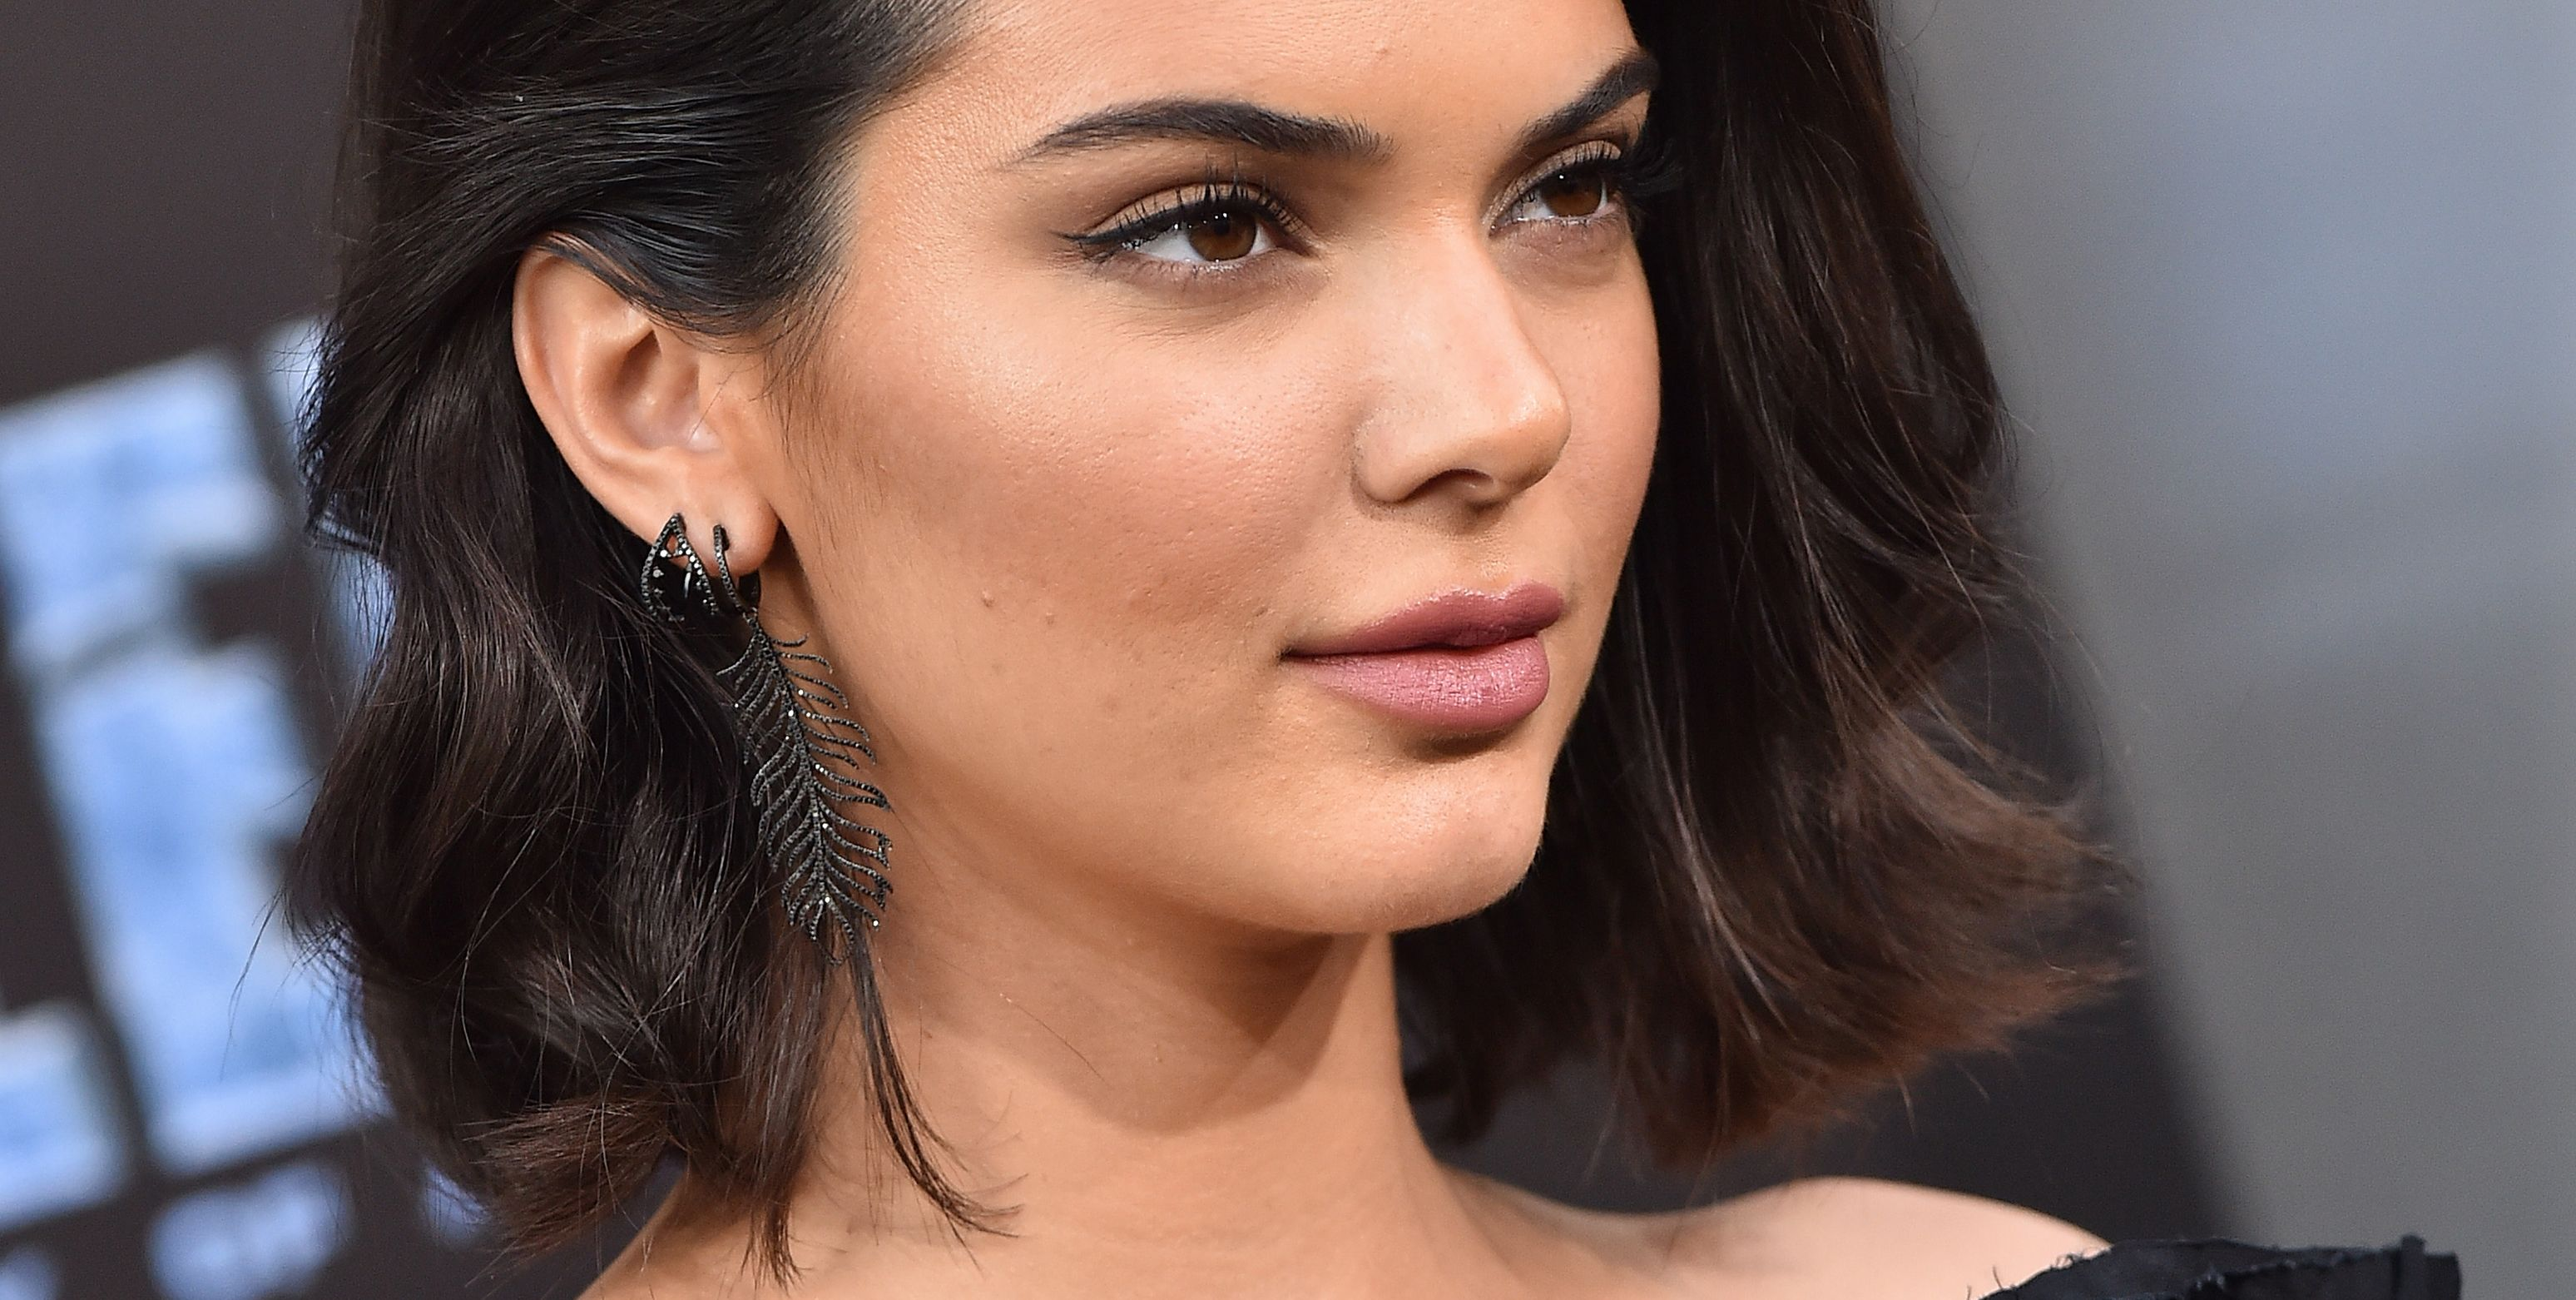 Kendall Jenner Is In Hot Water For Her Emoji Choice